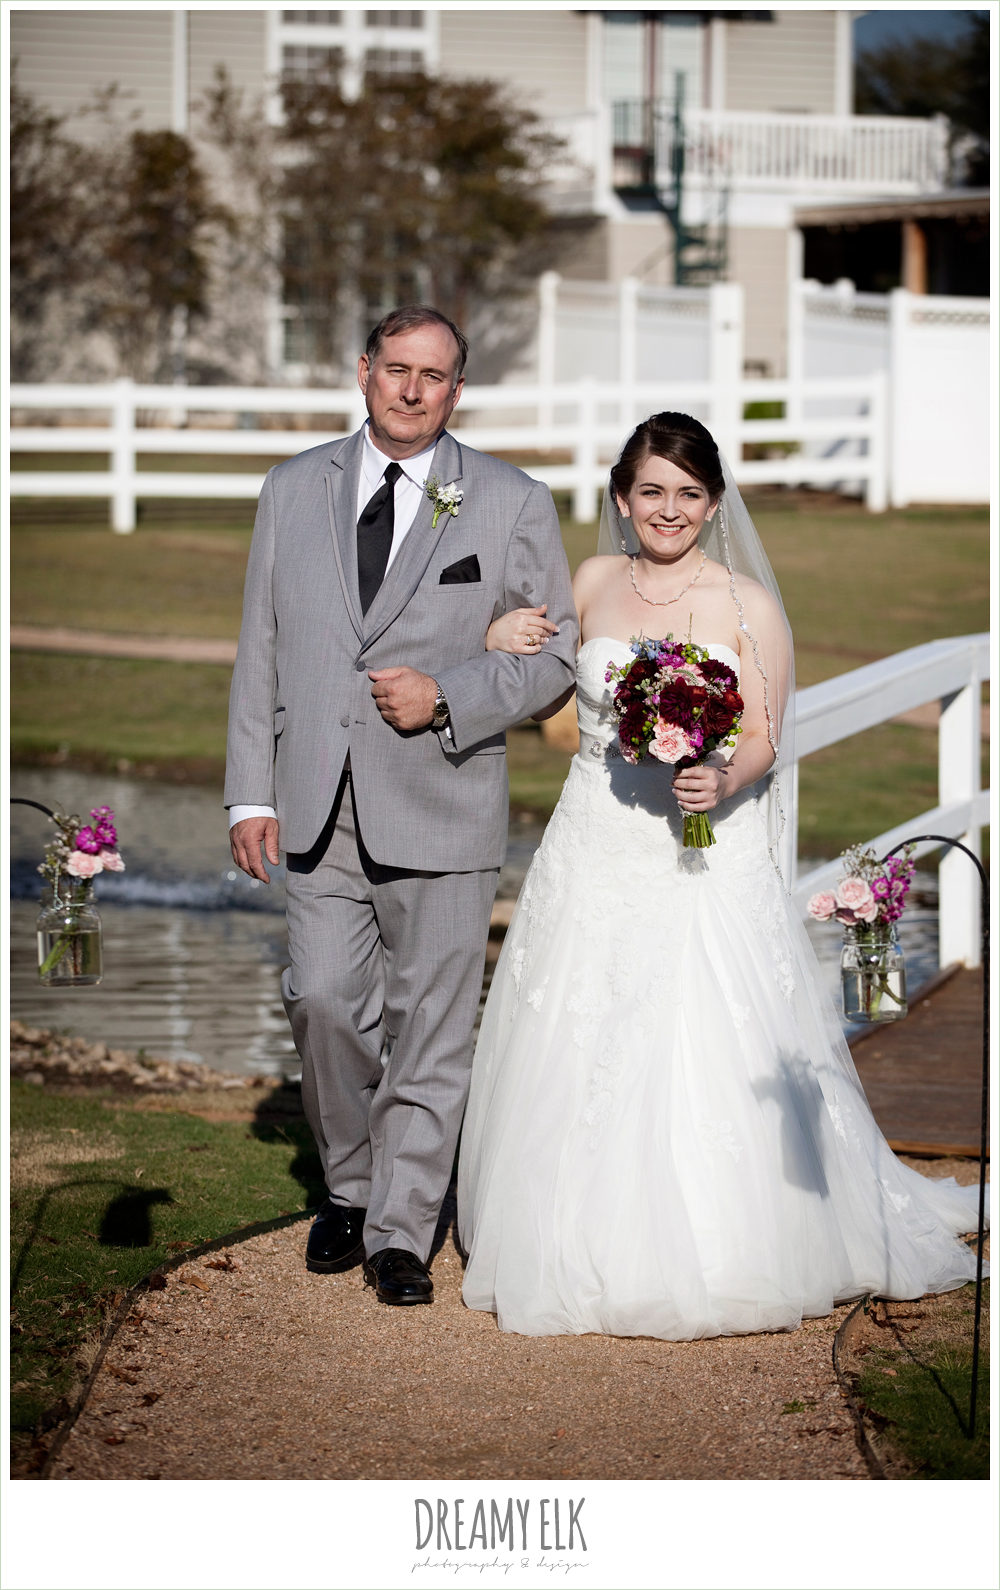 bride and dad walking down the aisle, october wedding, inn at quarry ridge, dreamy elk photography and design